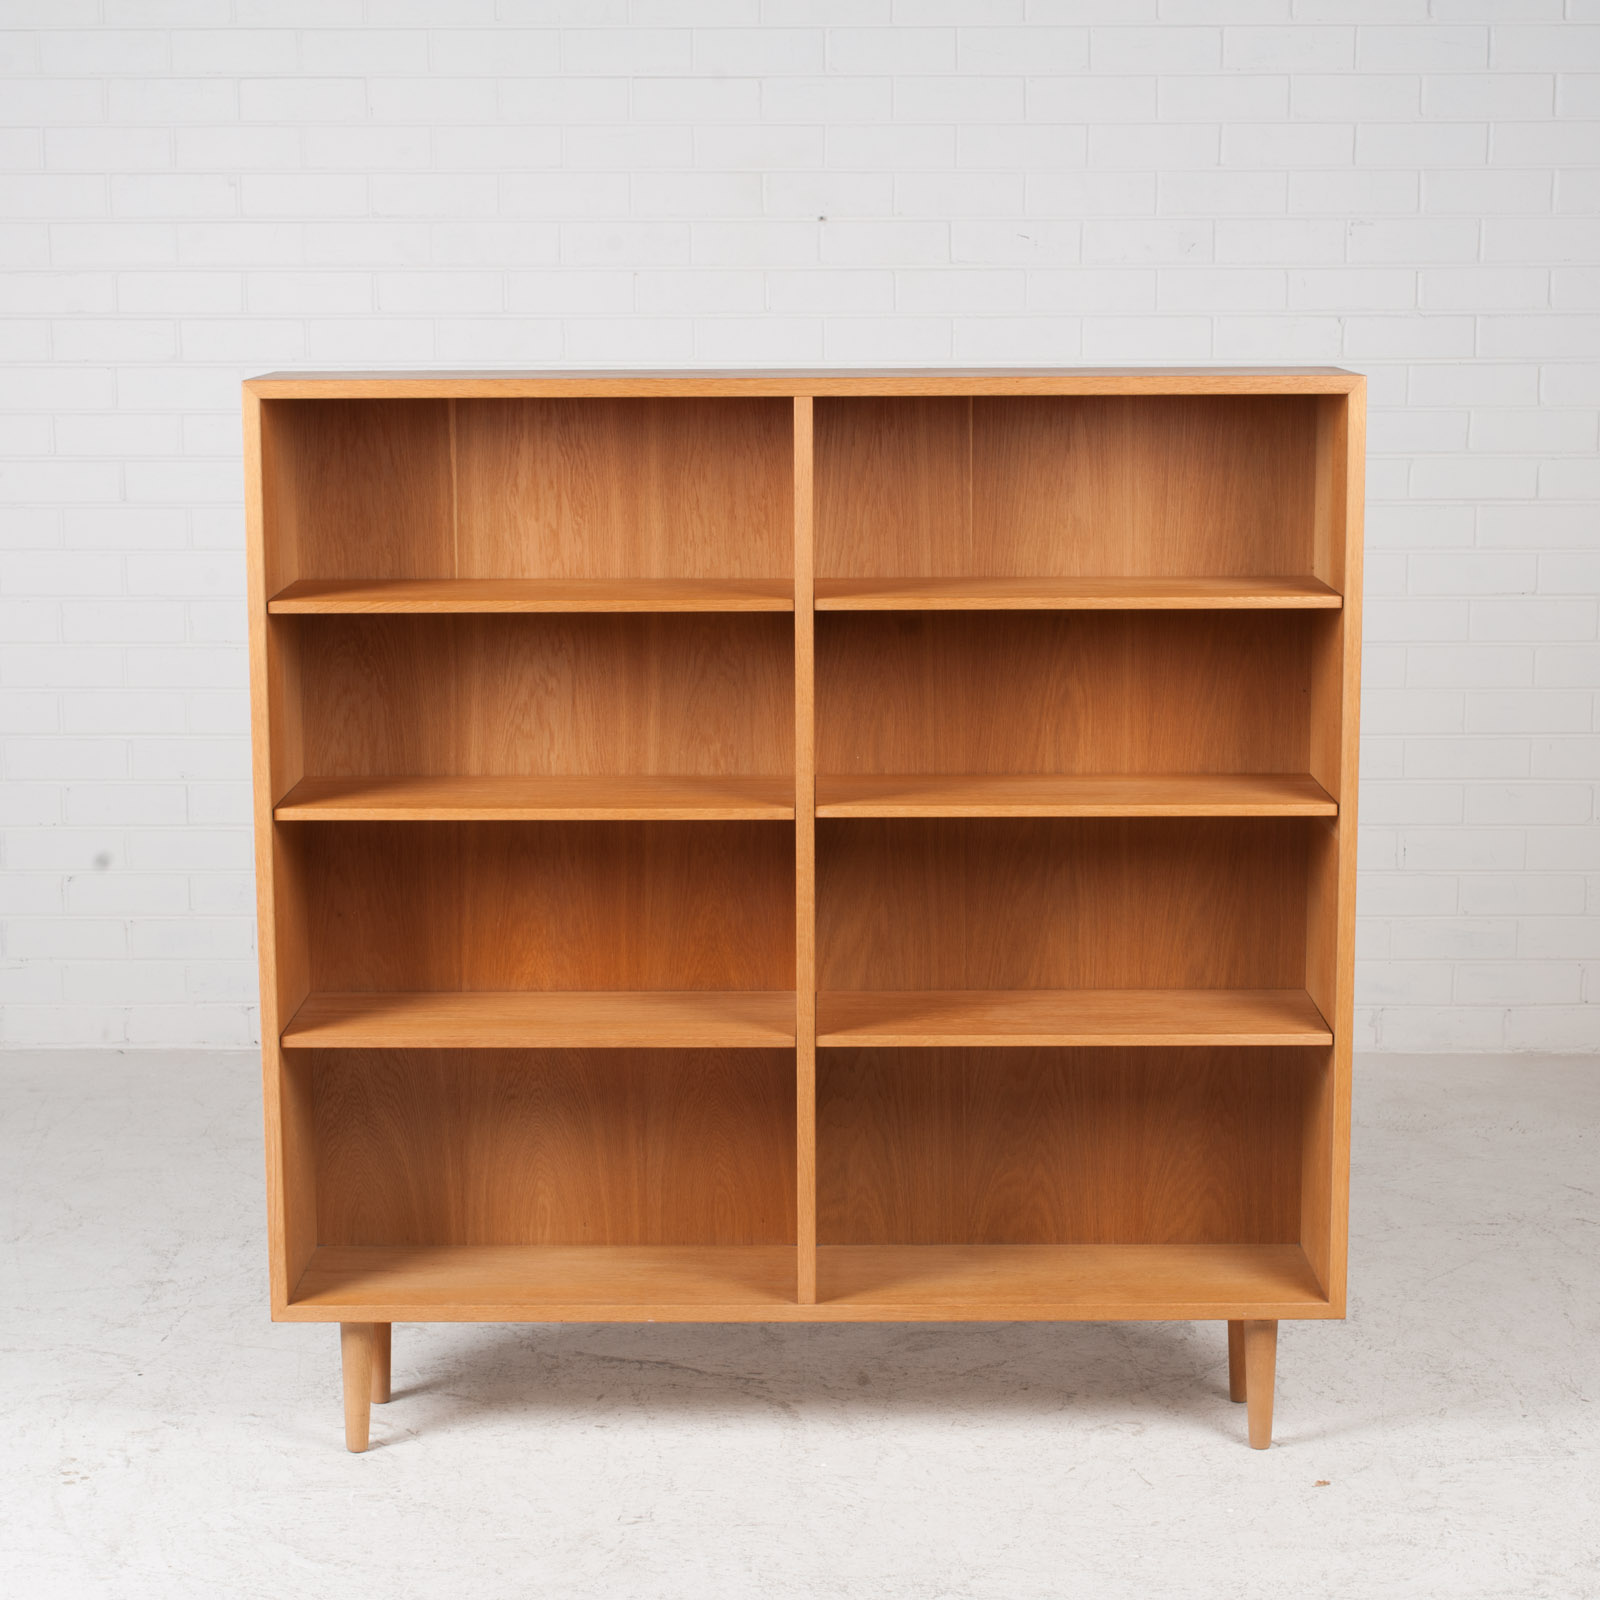 Bookcase By Borge Mogensen In Oak 1960s Denmark 02